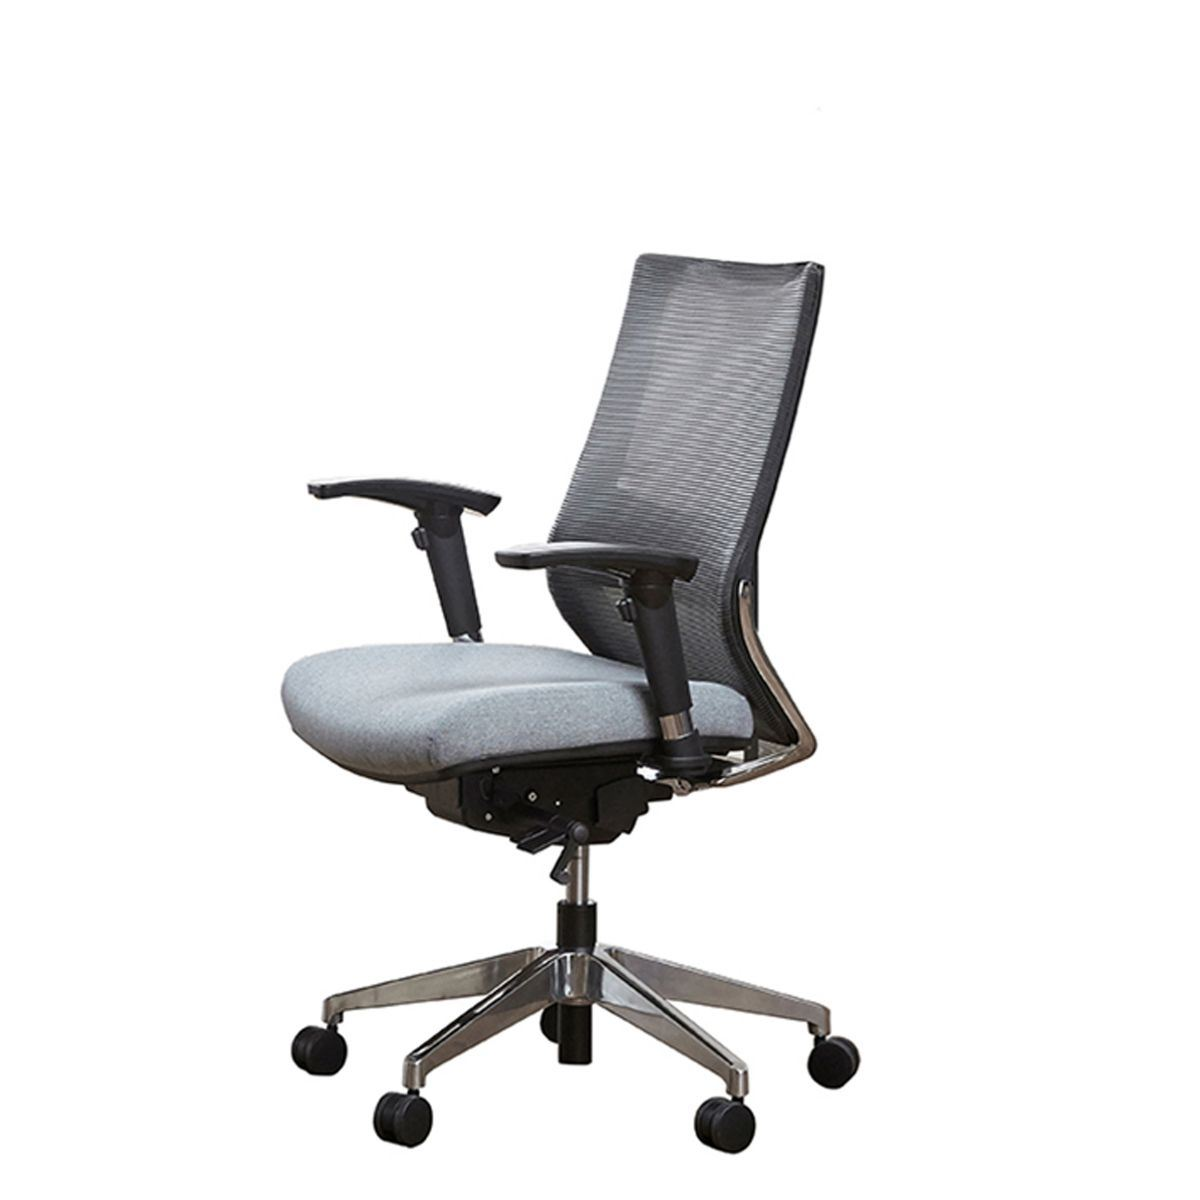 CEO Mid-Back Desk Chair | INspiration Furniture - Vancouver BC on brown office chair, ergonomic office chair, walmart reclining office chair, director office chair, low office chair, mid century office chair, white office chair, sciatica office chair, executive office chair, coccyx office chair, faux leather office chair, eames office chair, managers office chair, swivel office chair, mesh back office chair, pink office chair, kneeling office chair, task office chair, high-back office chair, red office chair,